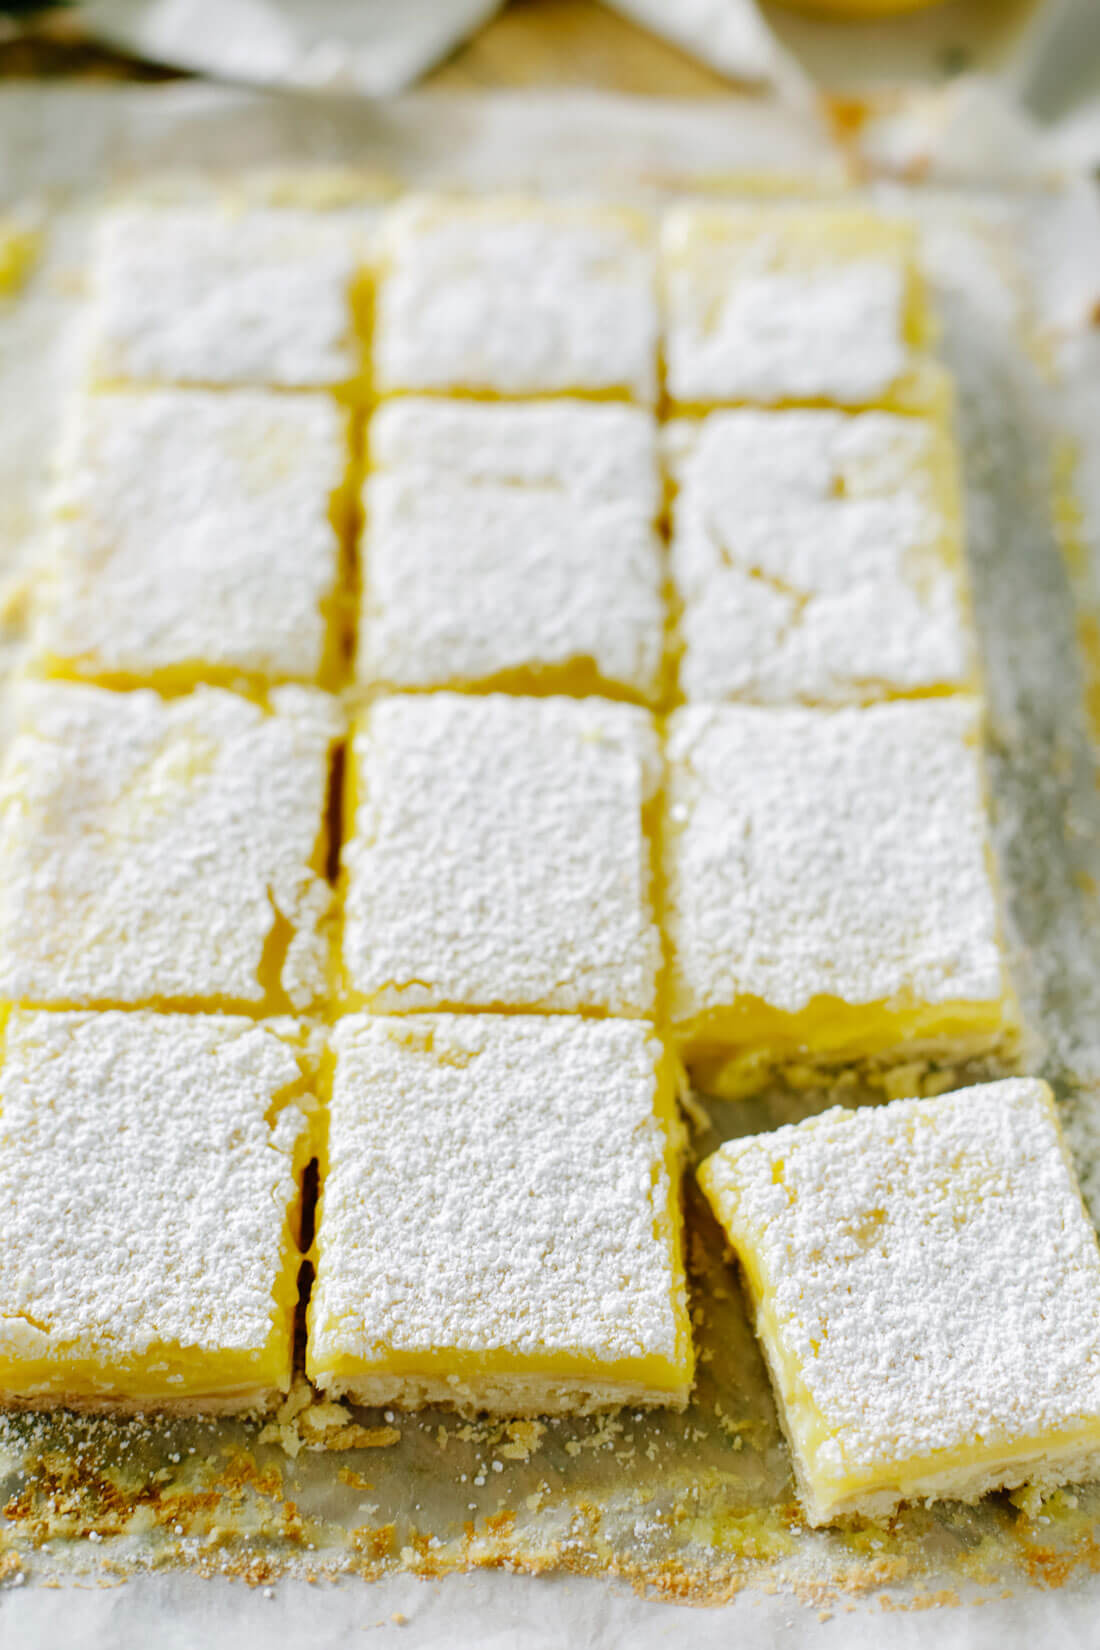 Up close lemon bars